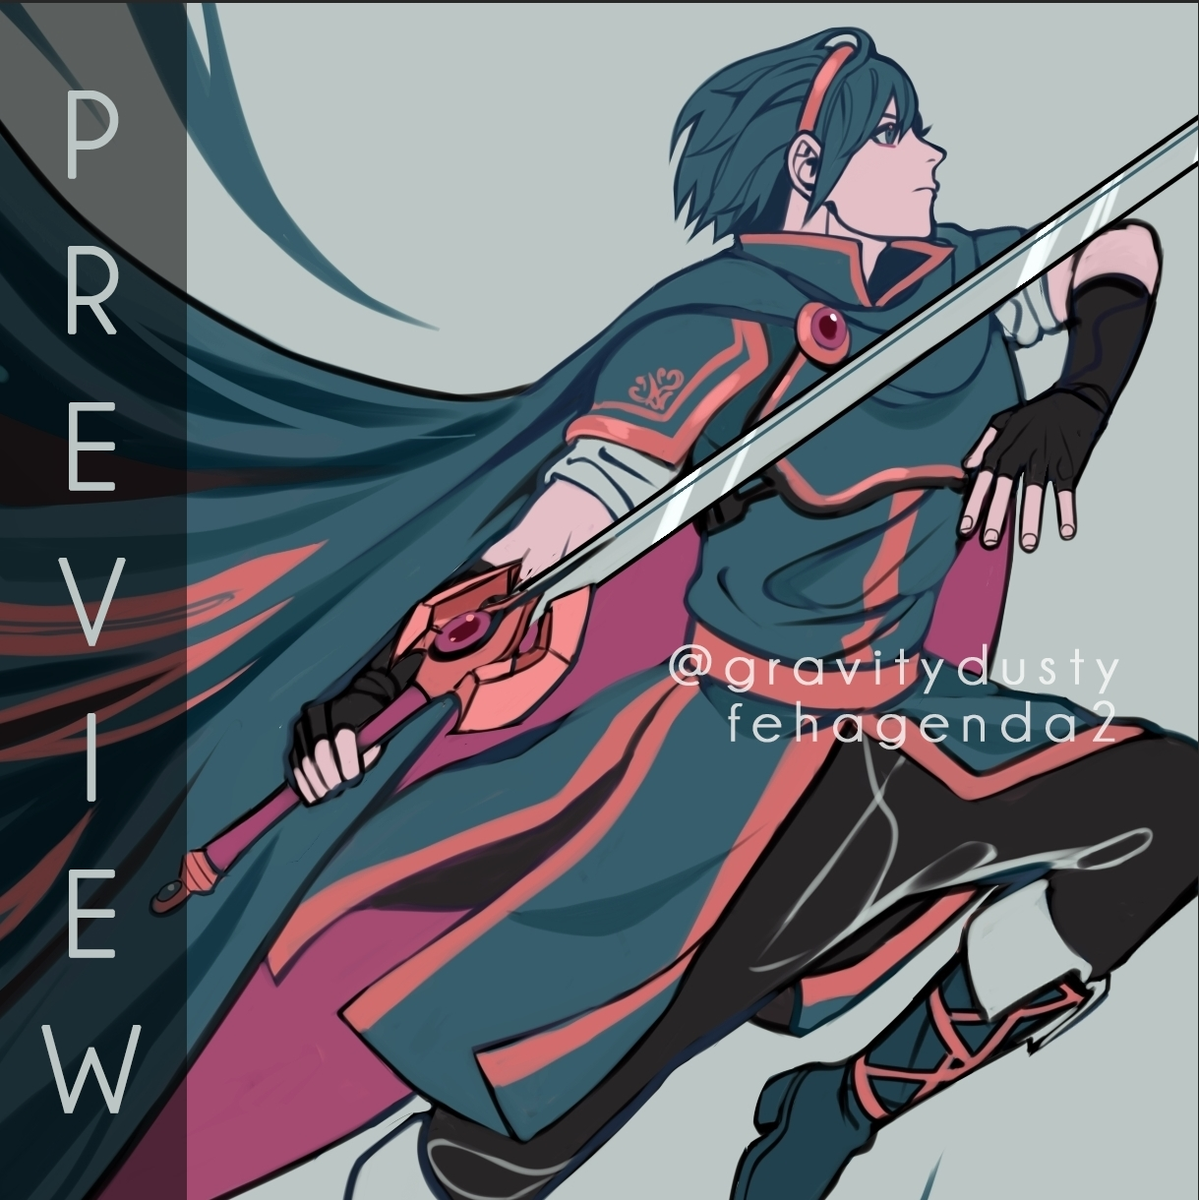 ✨Preview of the cover I had the honor of making for @fehplanner ✨ Please keep an eye out for preorders opening up soon!!